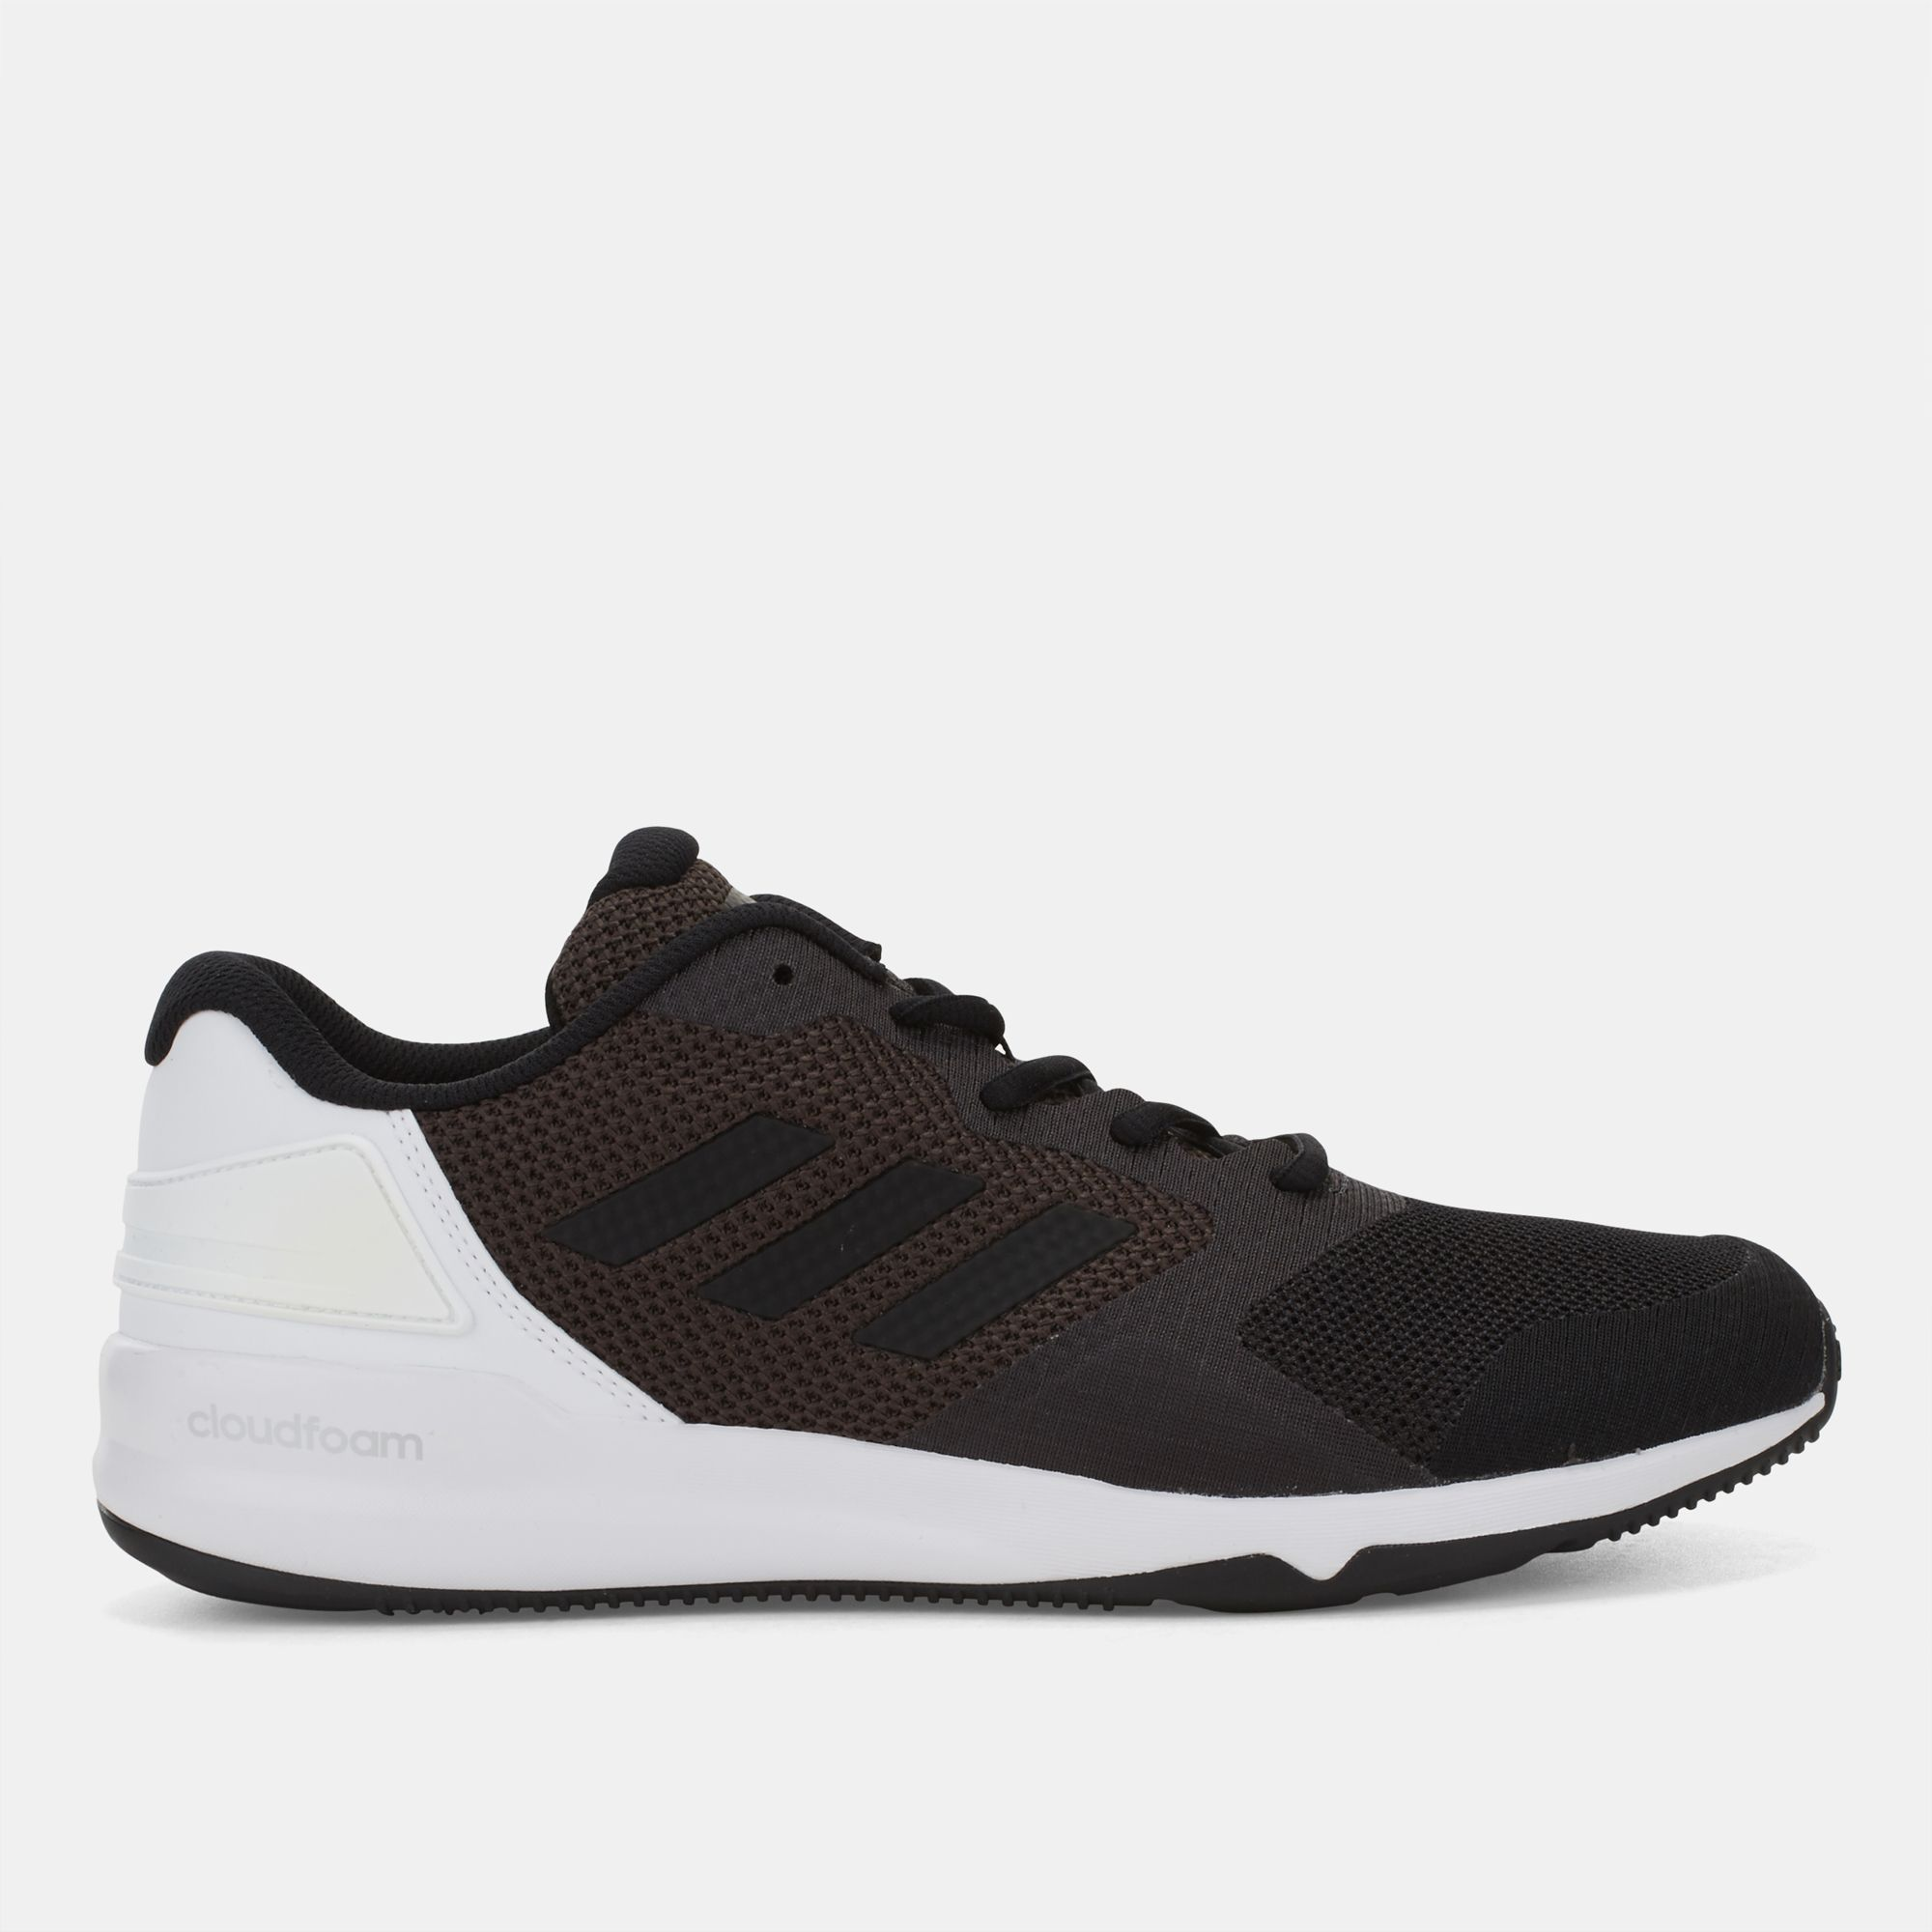 outlet store 92baf 1952e adidas CrazyTrain 2.0 Cloudfoam Shoe  Sports Shoes  Shoes  M